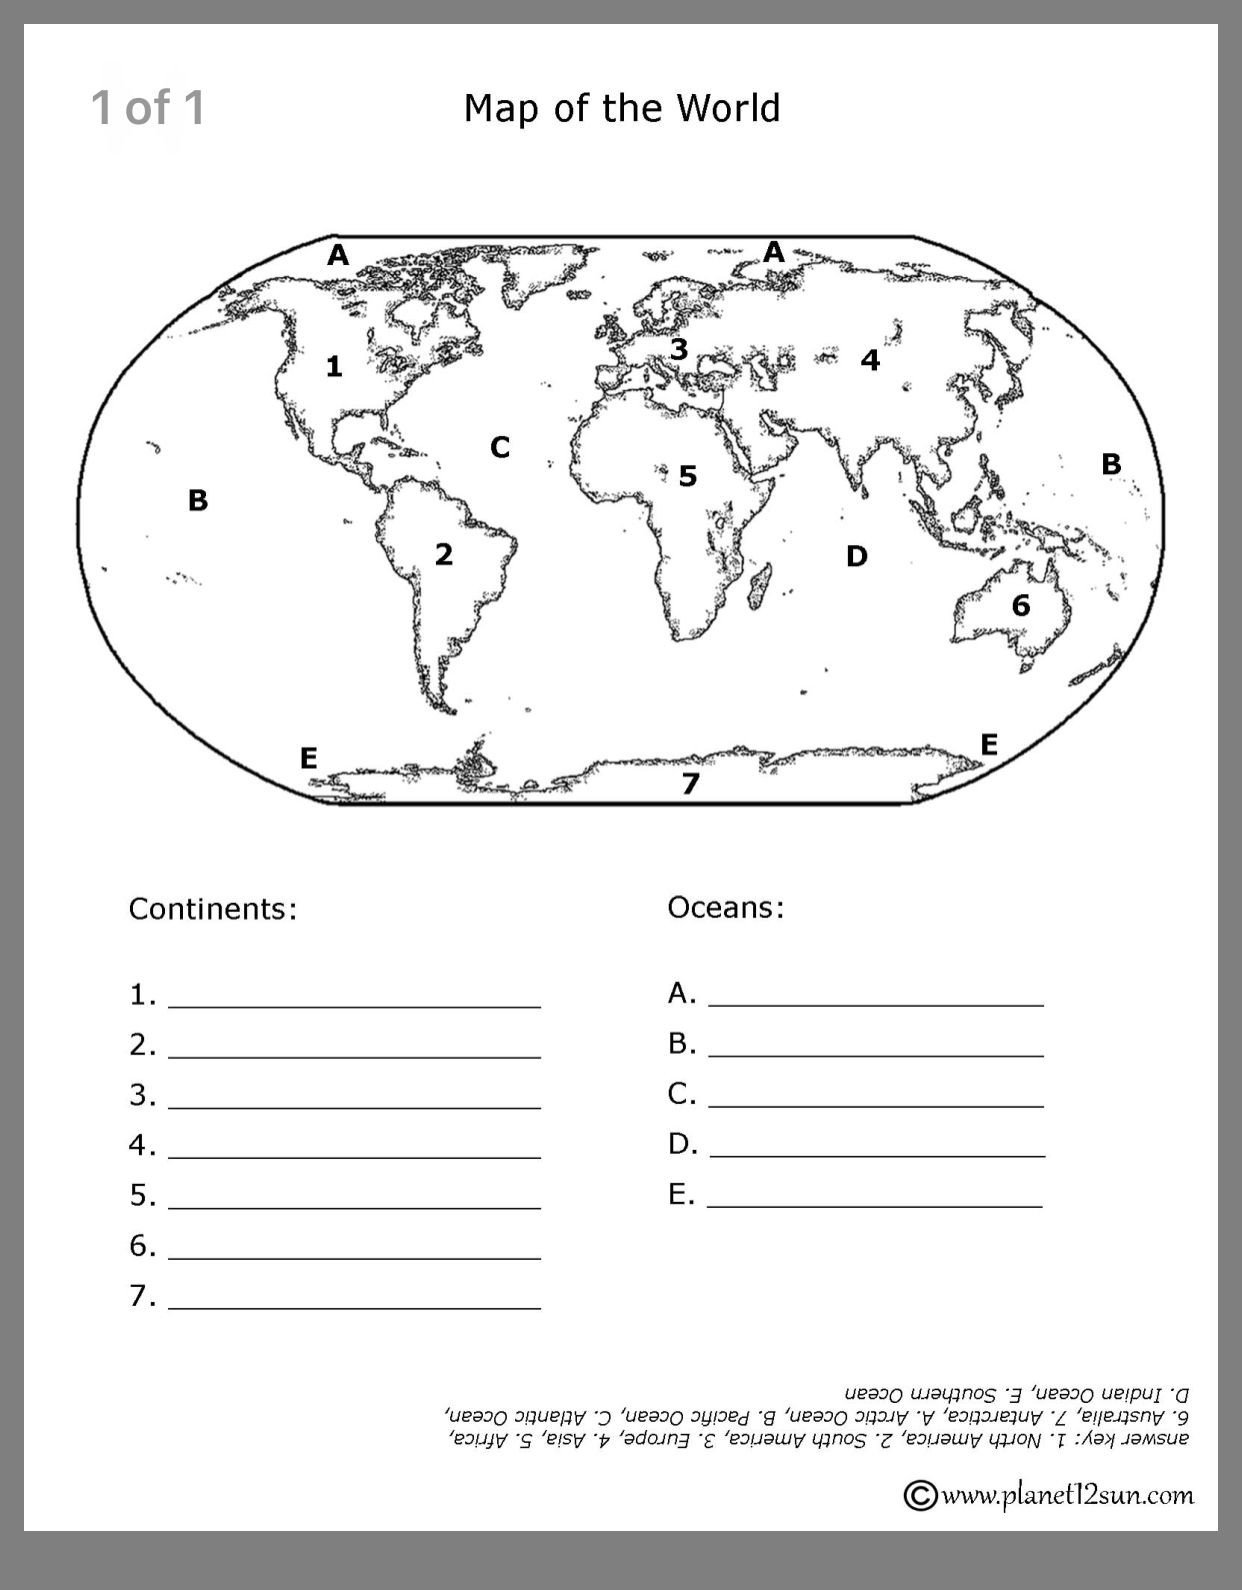 Label Continents and Oceans Worksheets Pin by Dawn Tran On Geography for Ava with Images